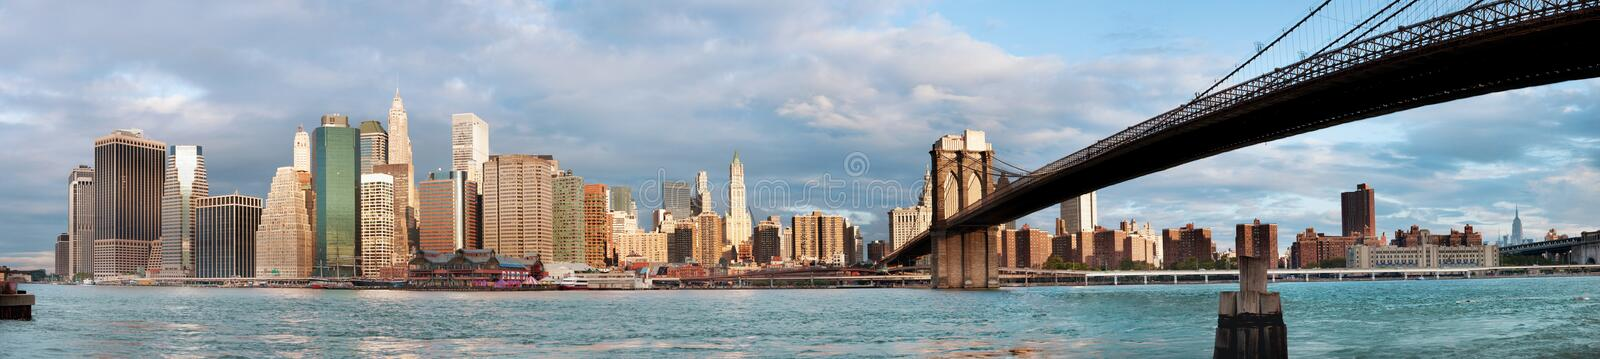 Download Manhattan Over The River - Early Morninig Stock Image - Image: 33708033